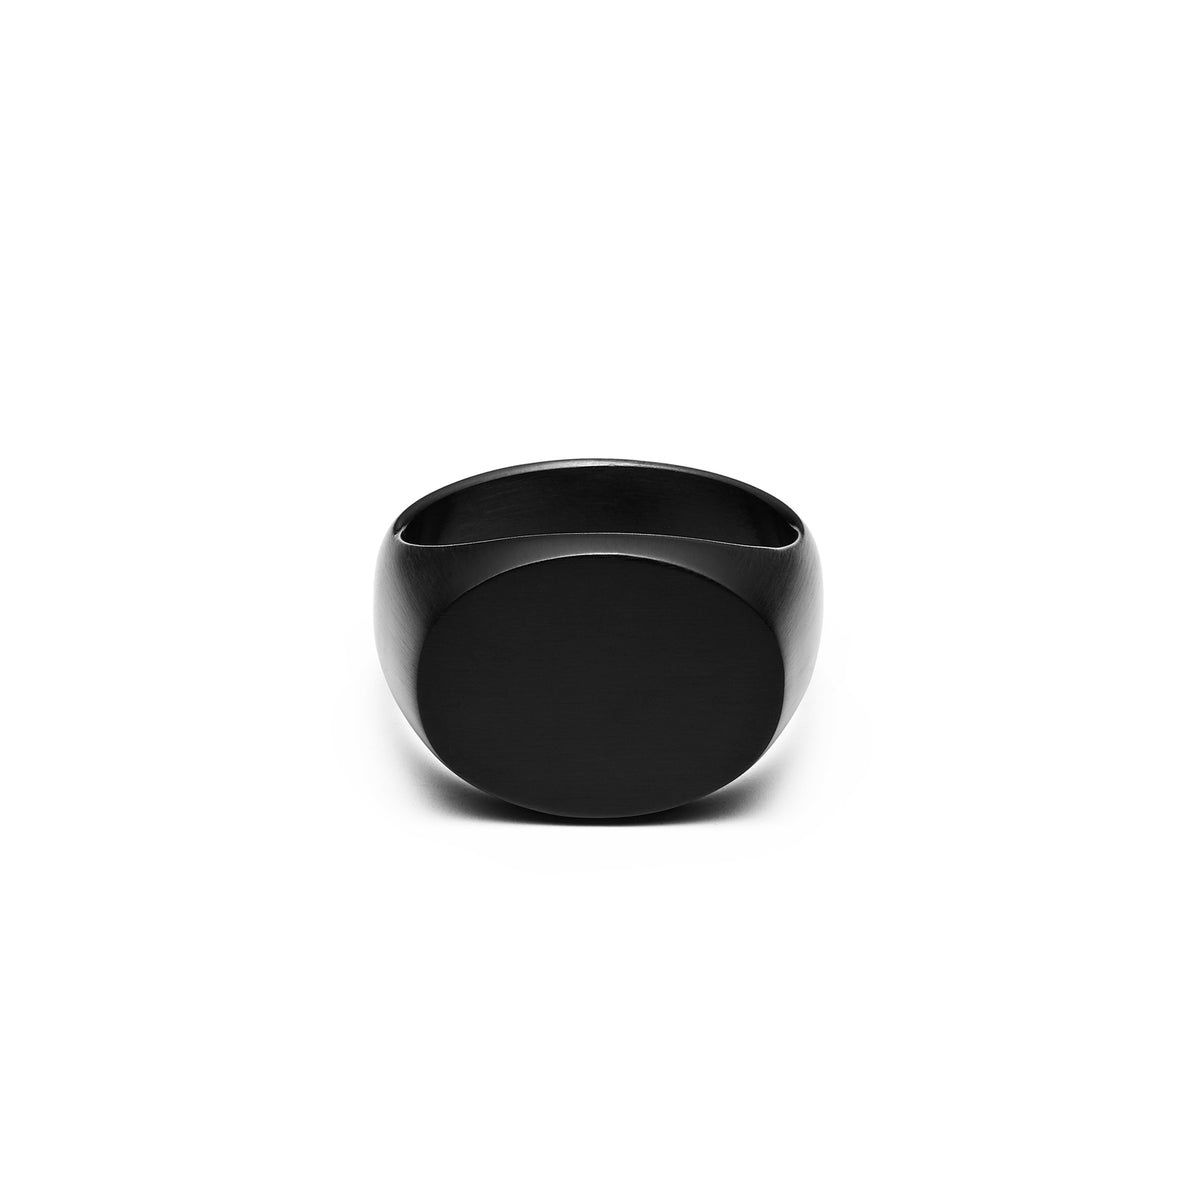 Signet Ring by Mvmt